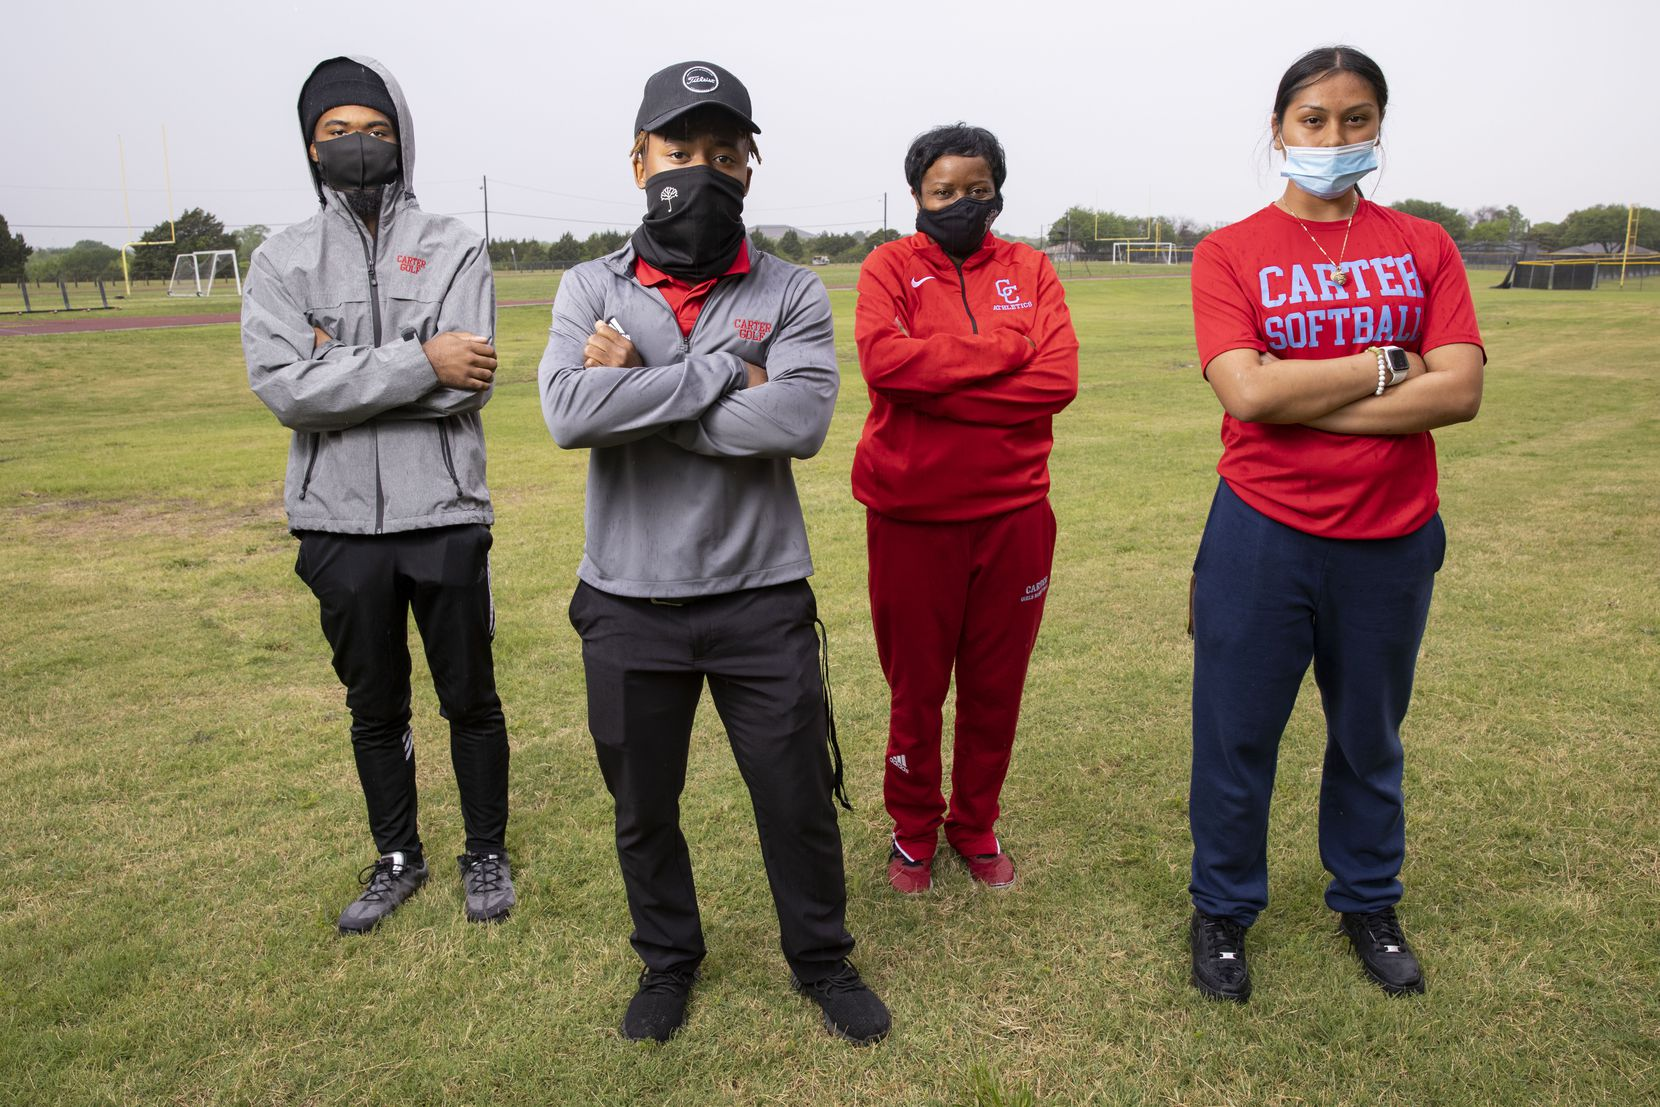 (From left) Carter High School regional golf qualifiers Glen Veasley, Jelani Rogers and Sherlyn Flores pose with coach Coach Cynthia Calahan (second to right) outside of David W. Carter High School's gymnasium in Dallas on Thursday, April 15, 2021.